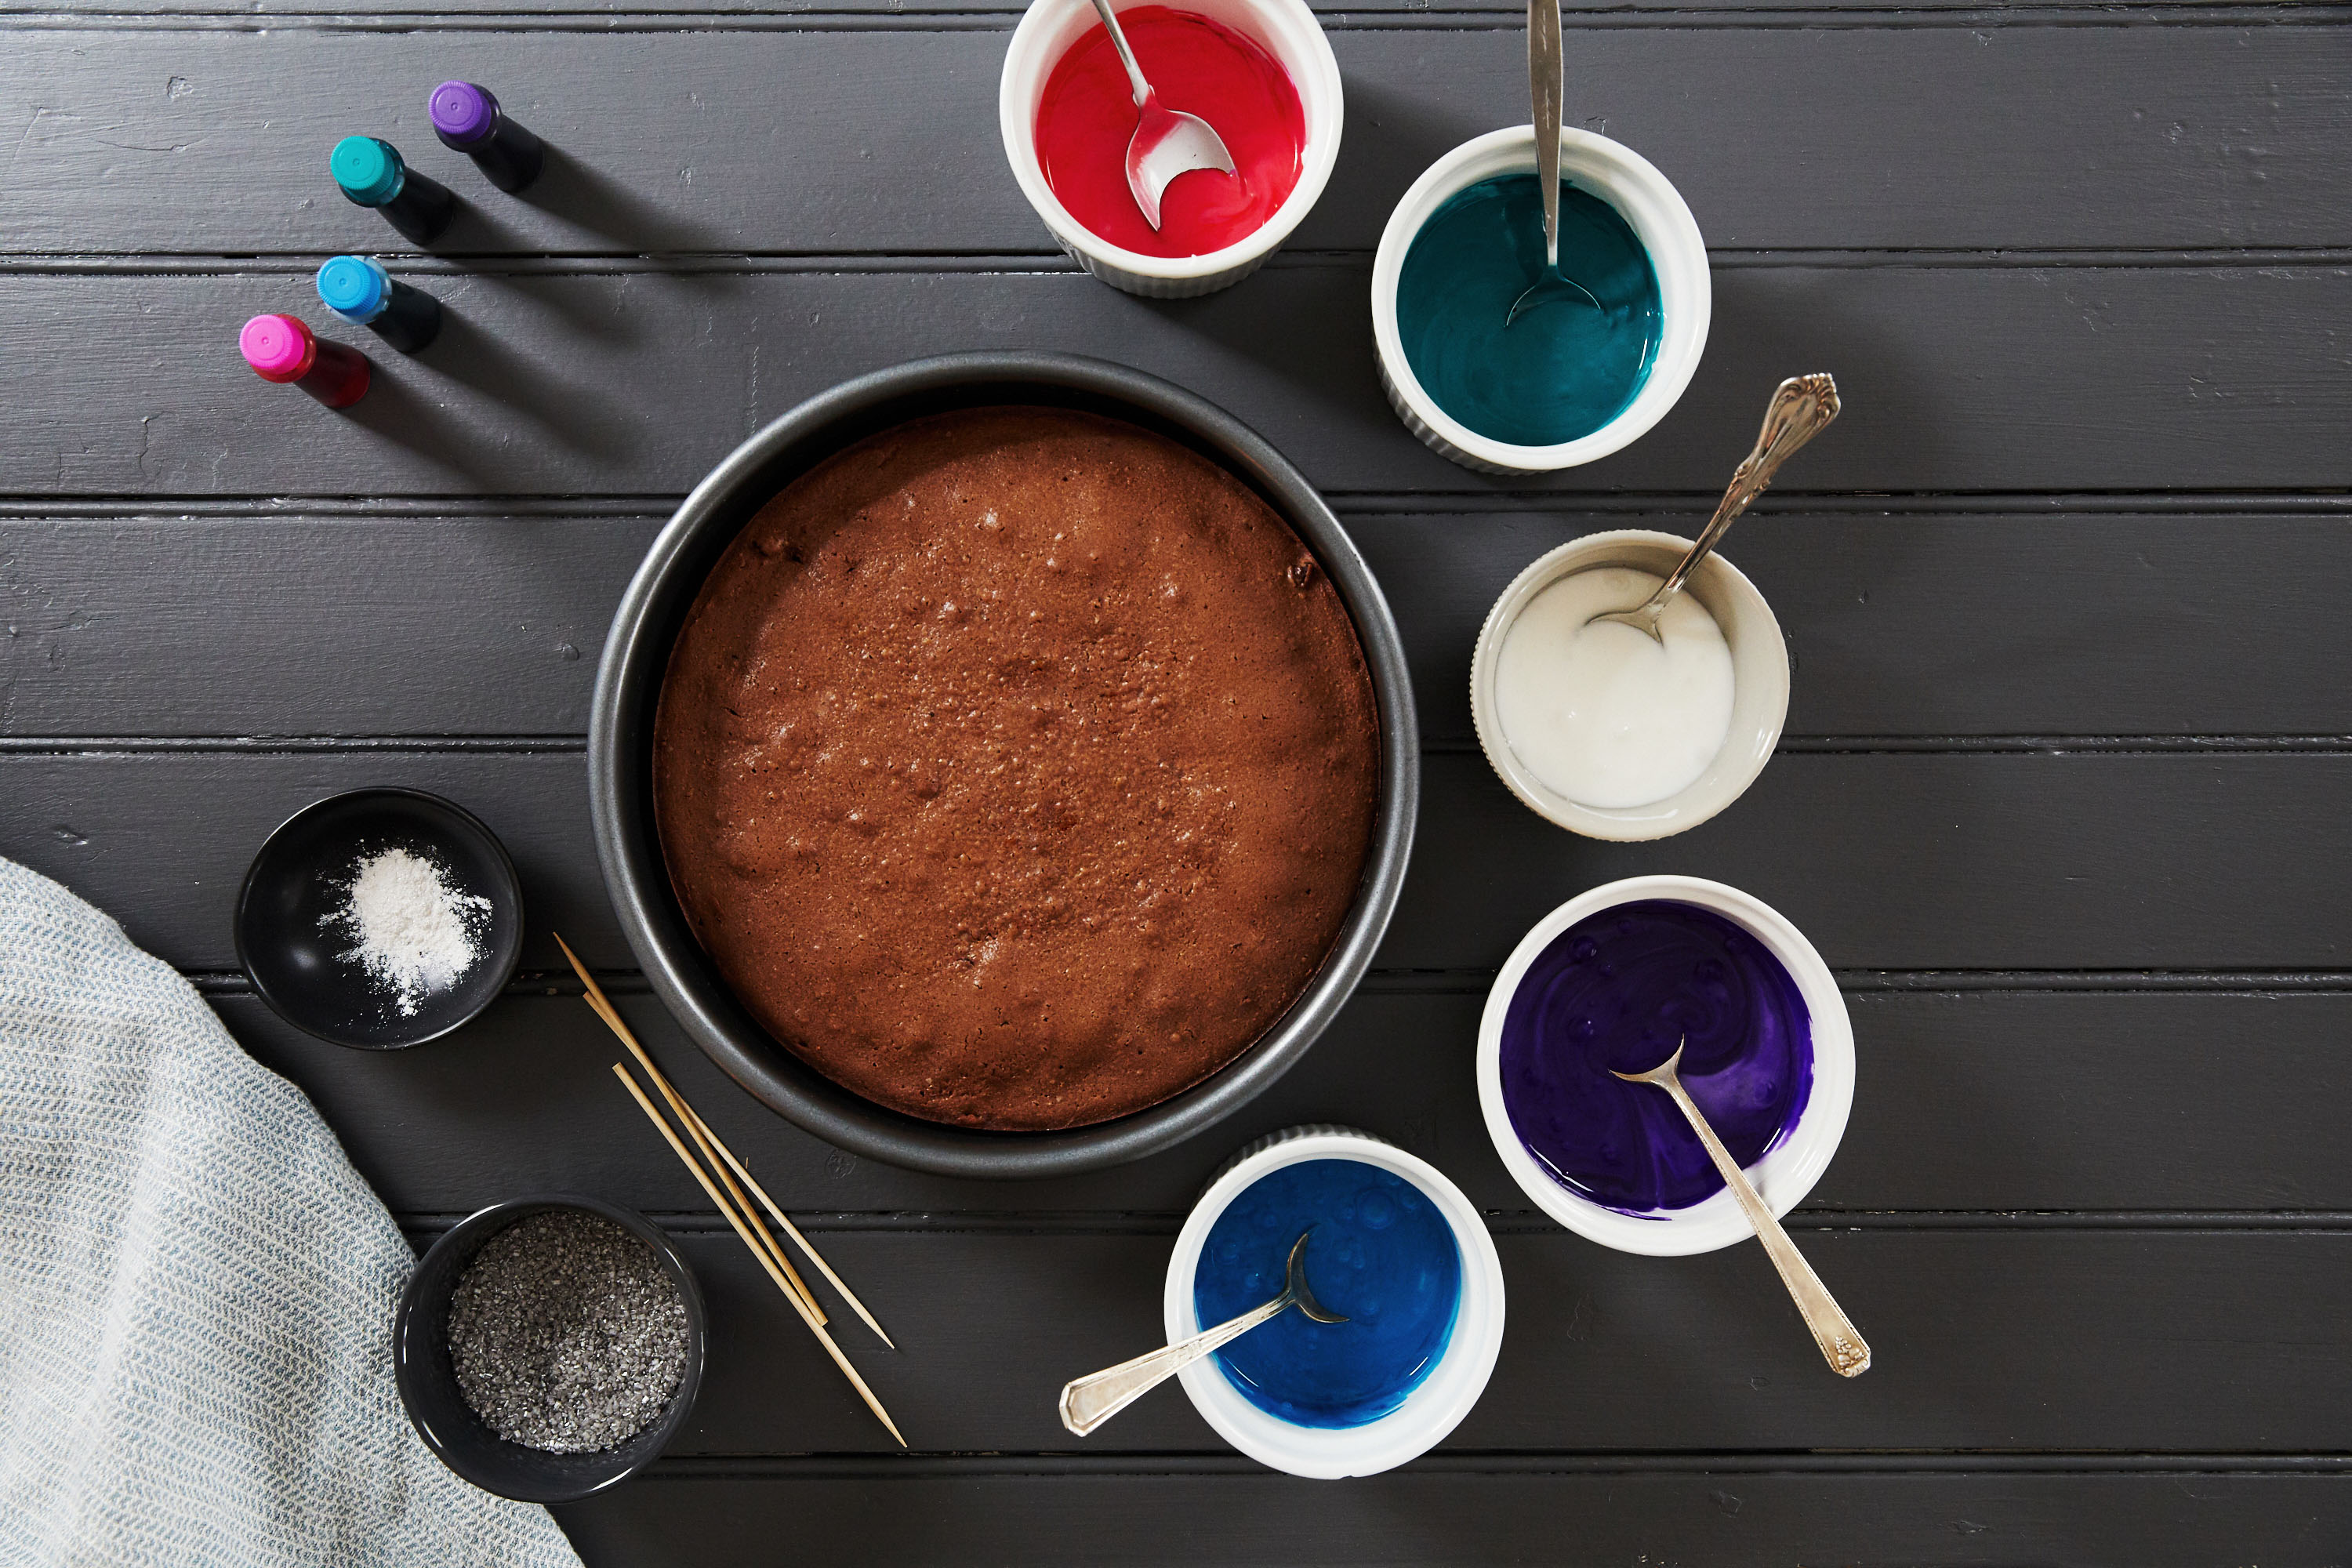 galaxy cake how-to with colored icing bowls